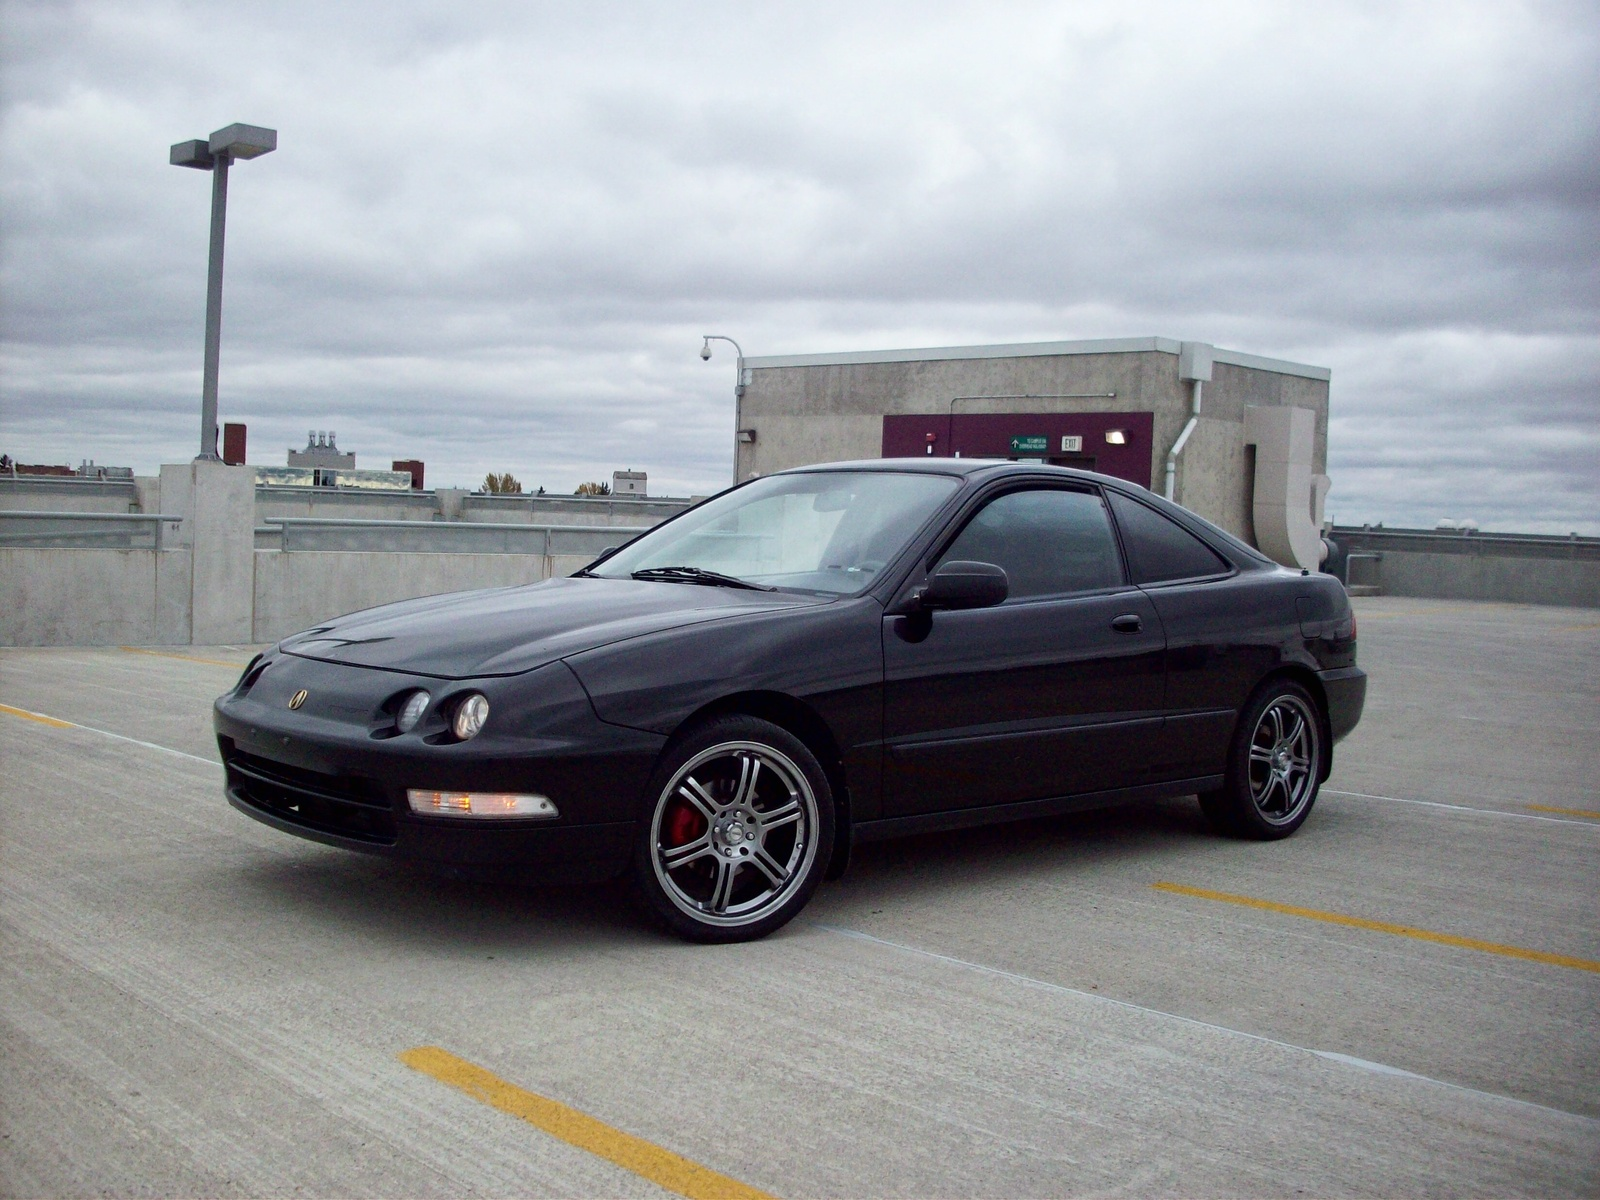 1997 Acura Integra Pictures Information And Specs 97 Engine Diagram Cars 3